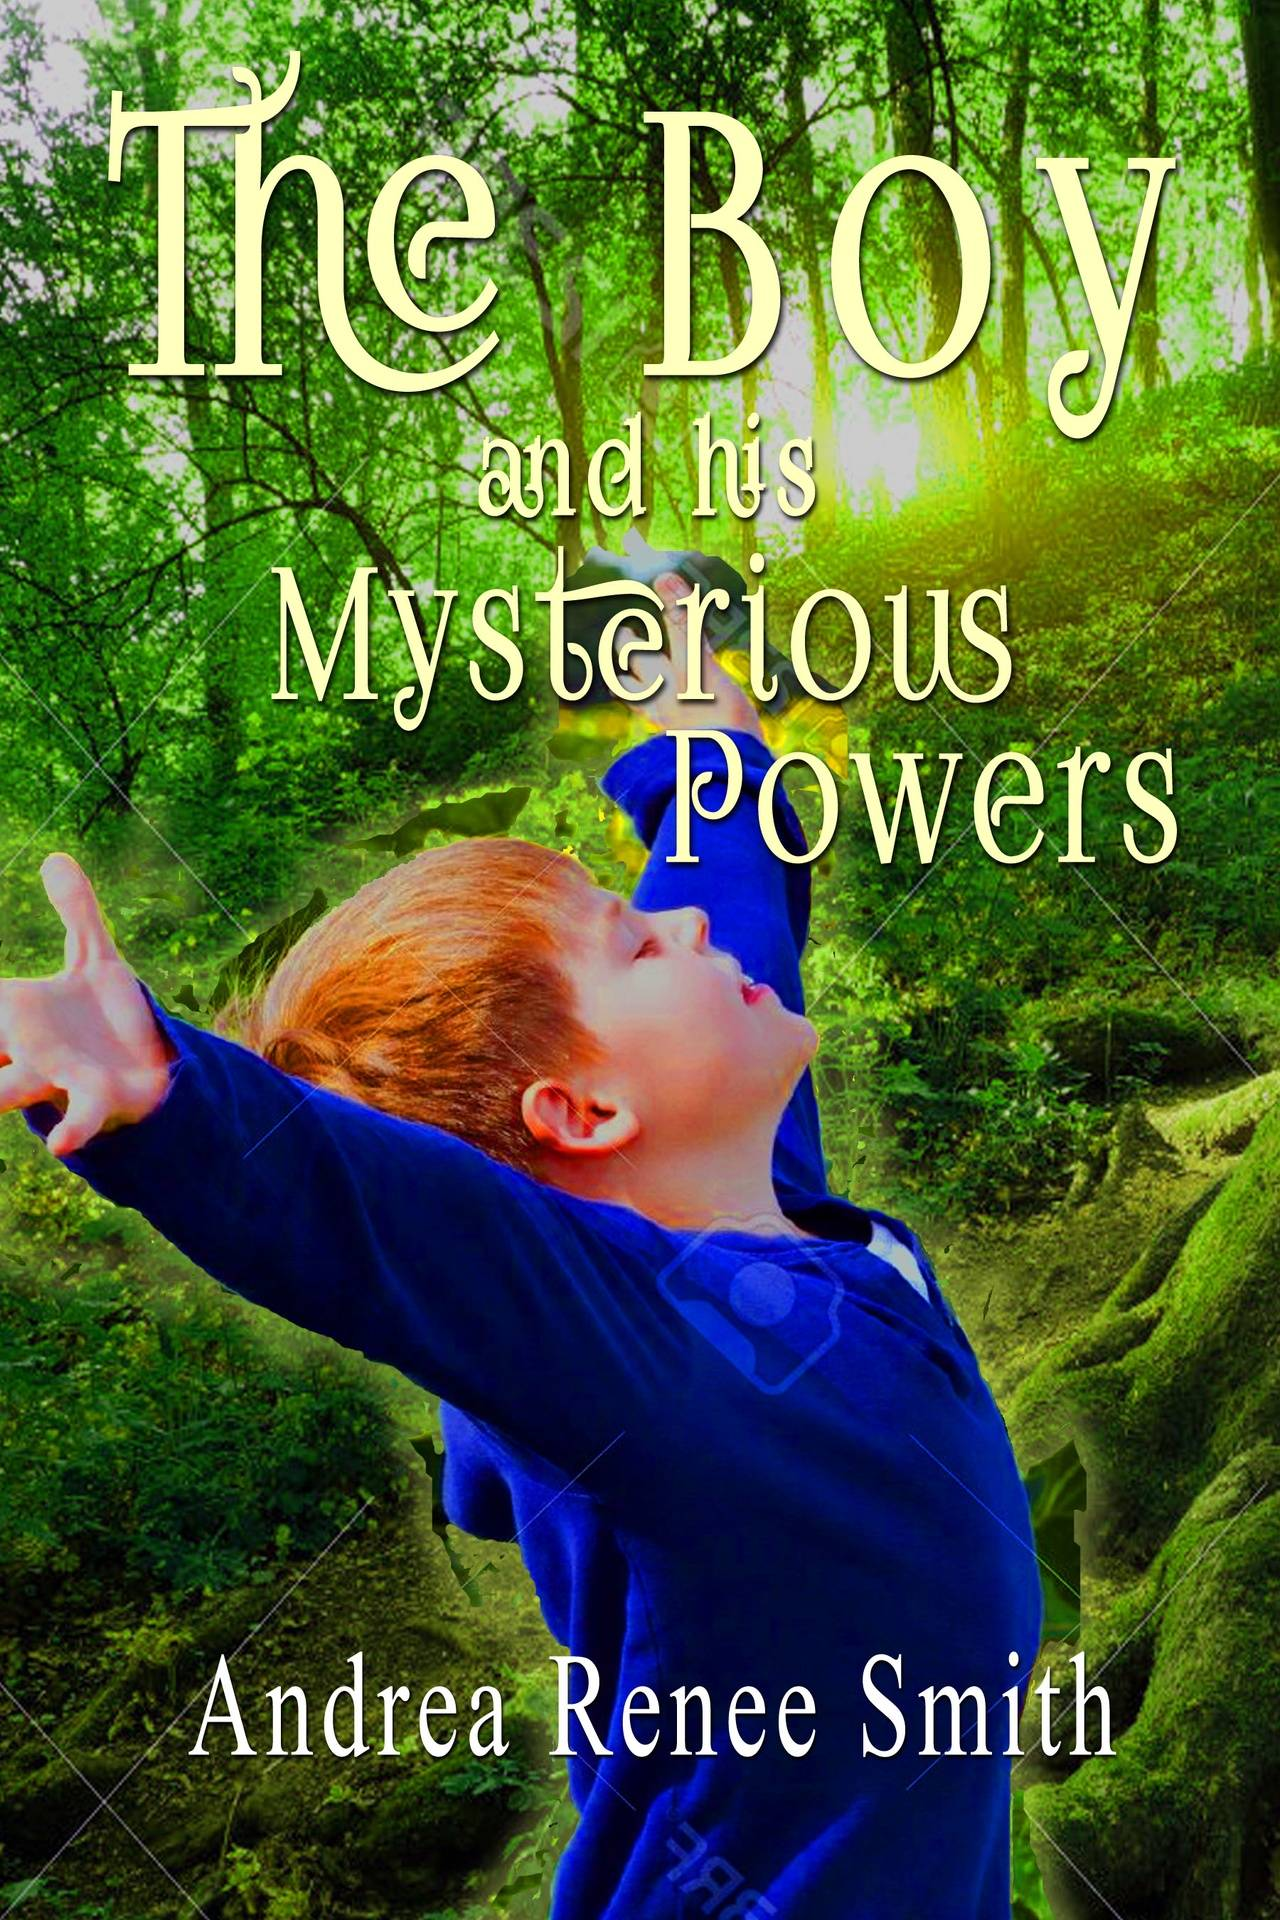 The Boy and his Myssterious Powers